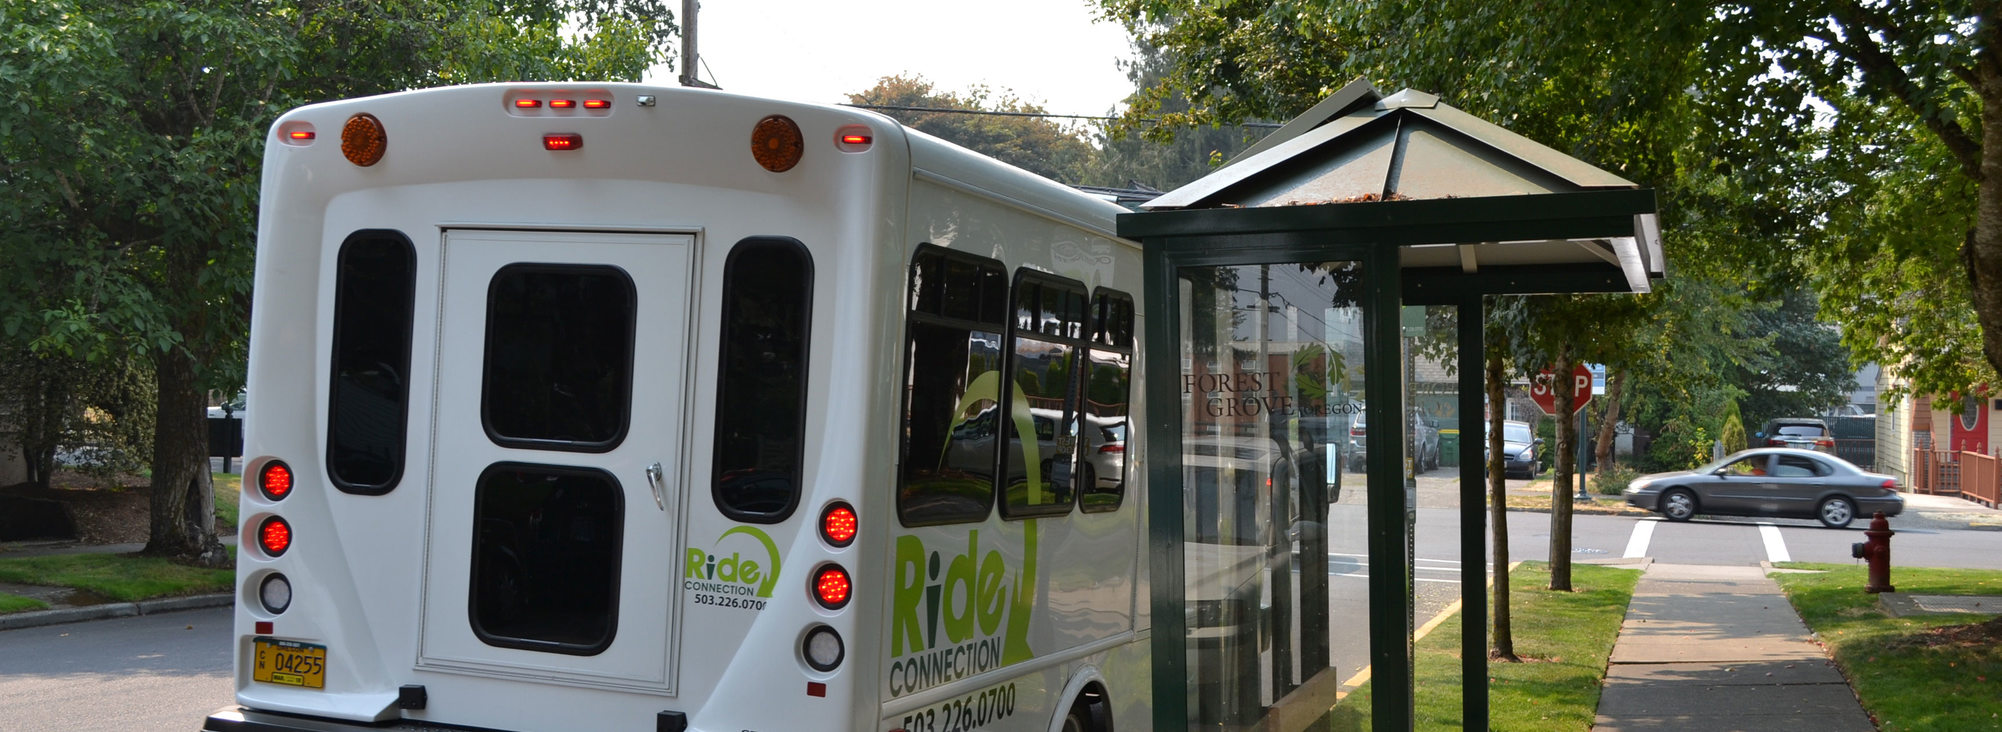 A Ride Connection bus at a bus stop in Forest Grove